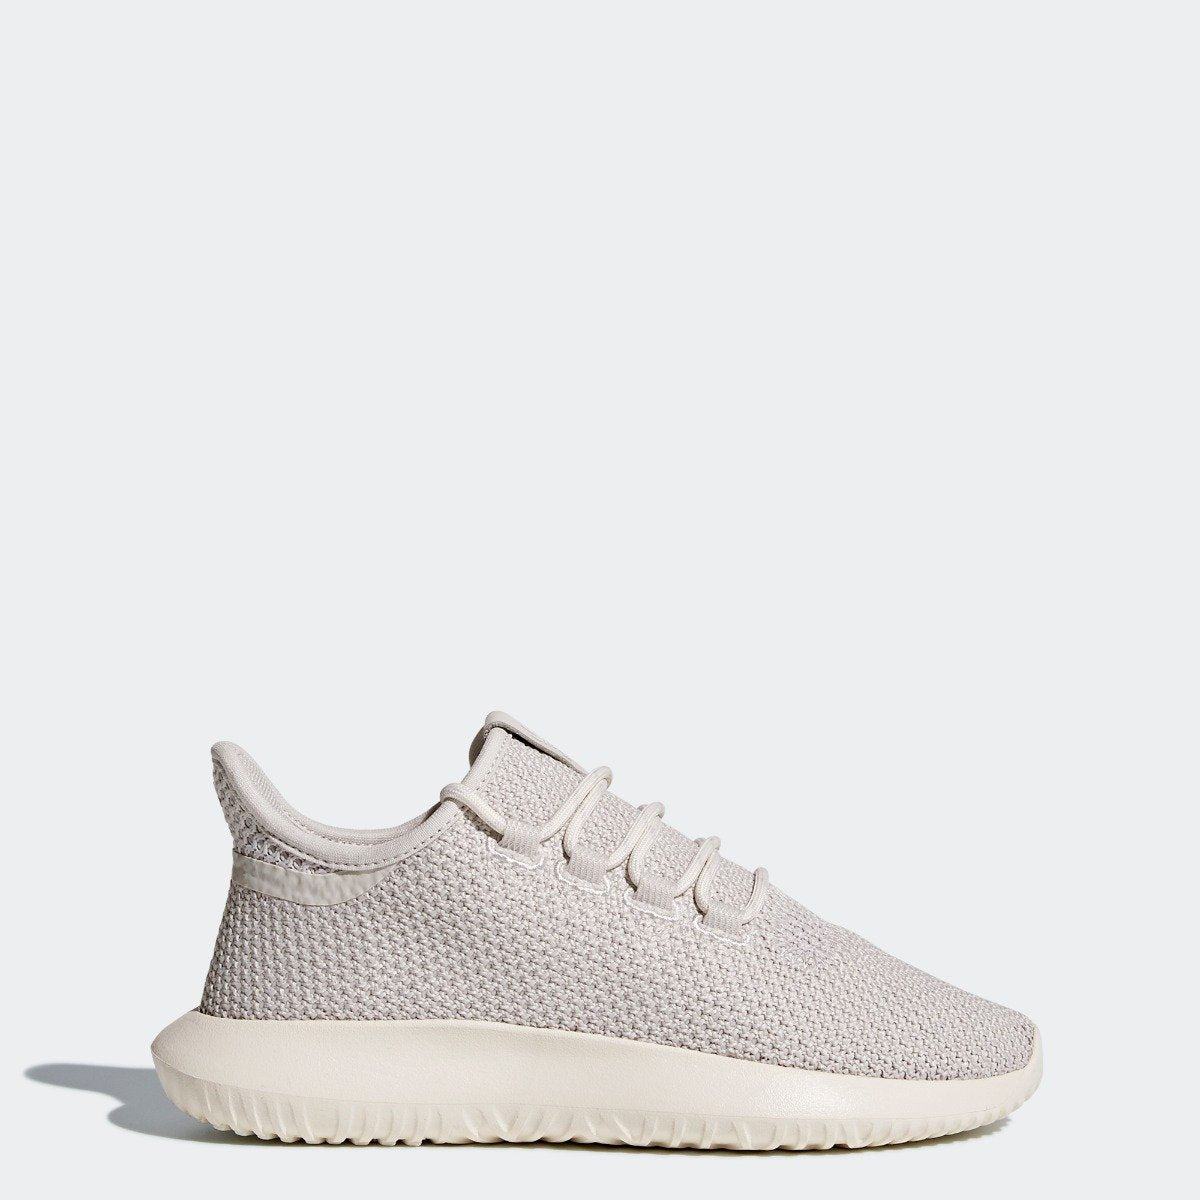 sale retailer 98c2e 83bdc Kid's adidas Originals Tubular Shadow Shoes Chalk Pearl - 4Y / CREAM